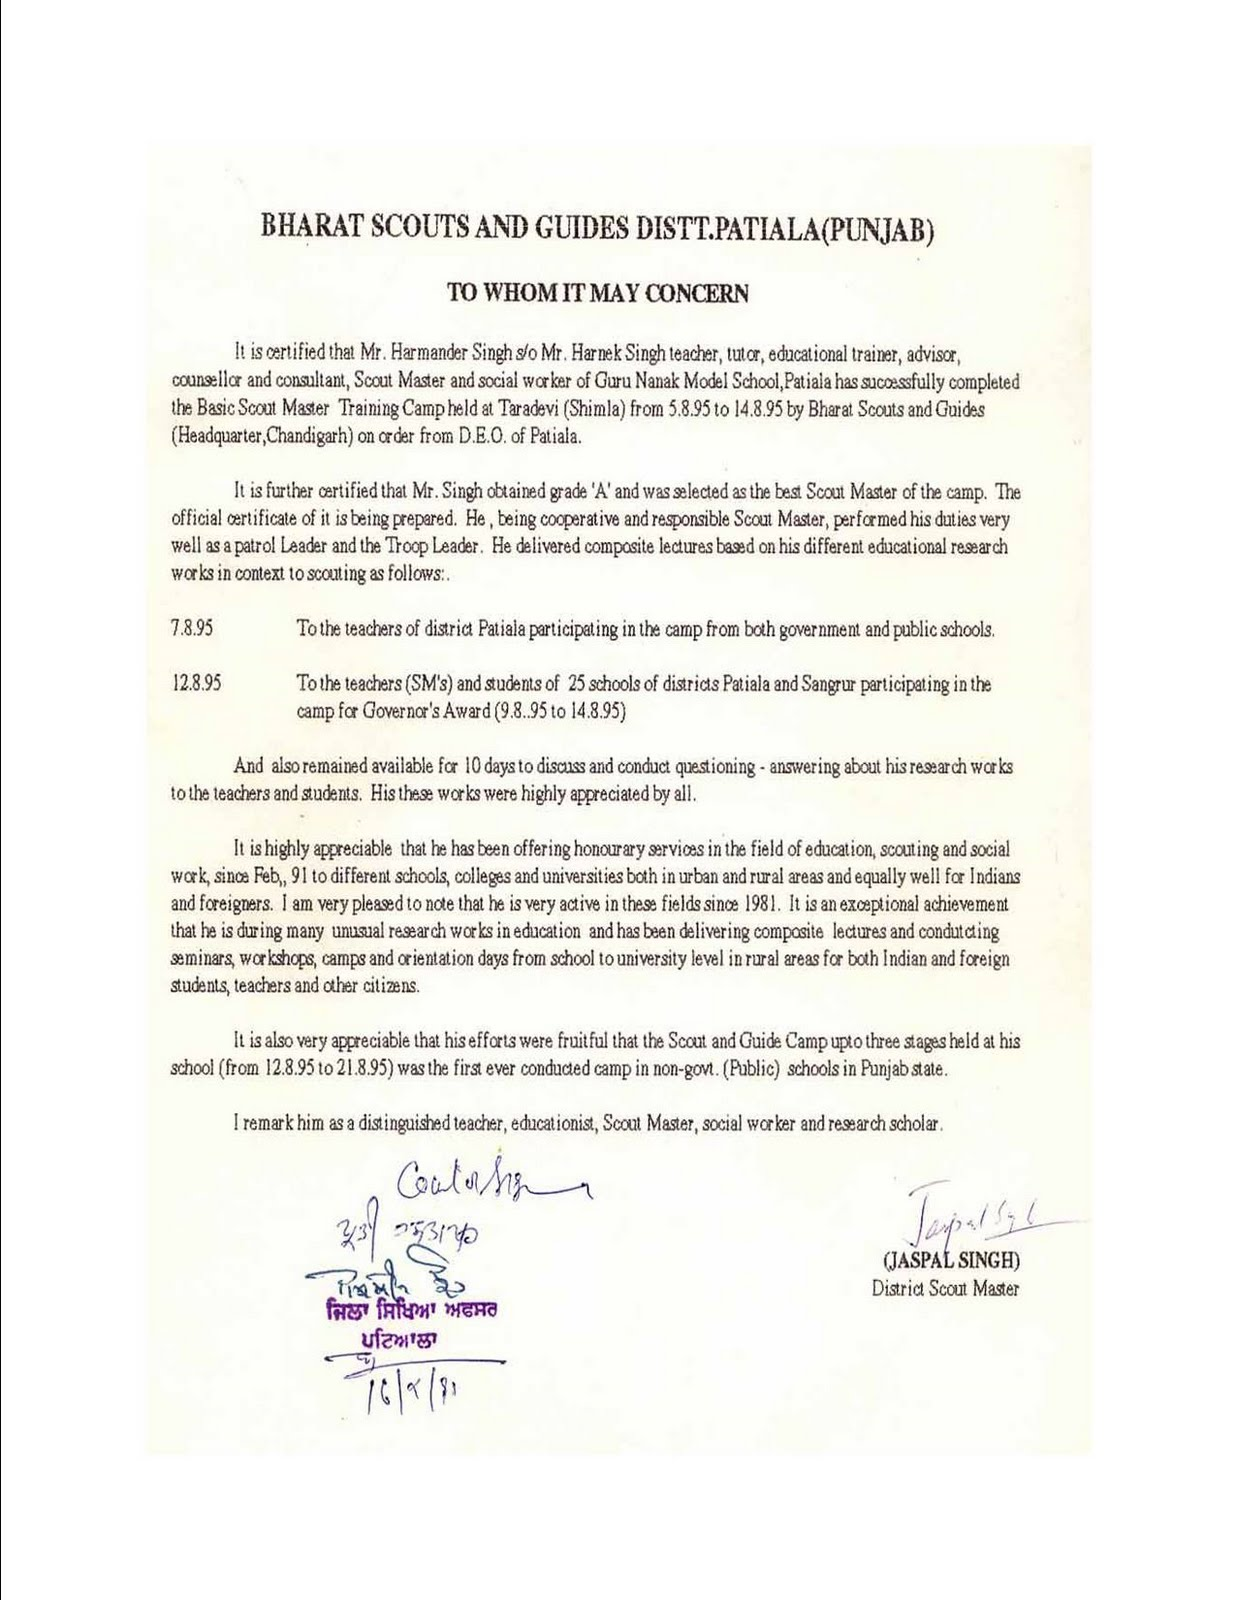 Readers writers publishers and books my 3 oaths and letters of my 3 oaths and letters of appreciation from australia and district education officer of patiala spiritdancerdesigns Image collections